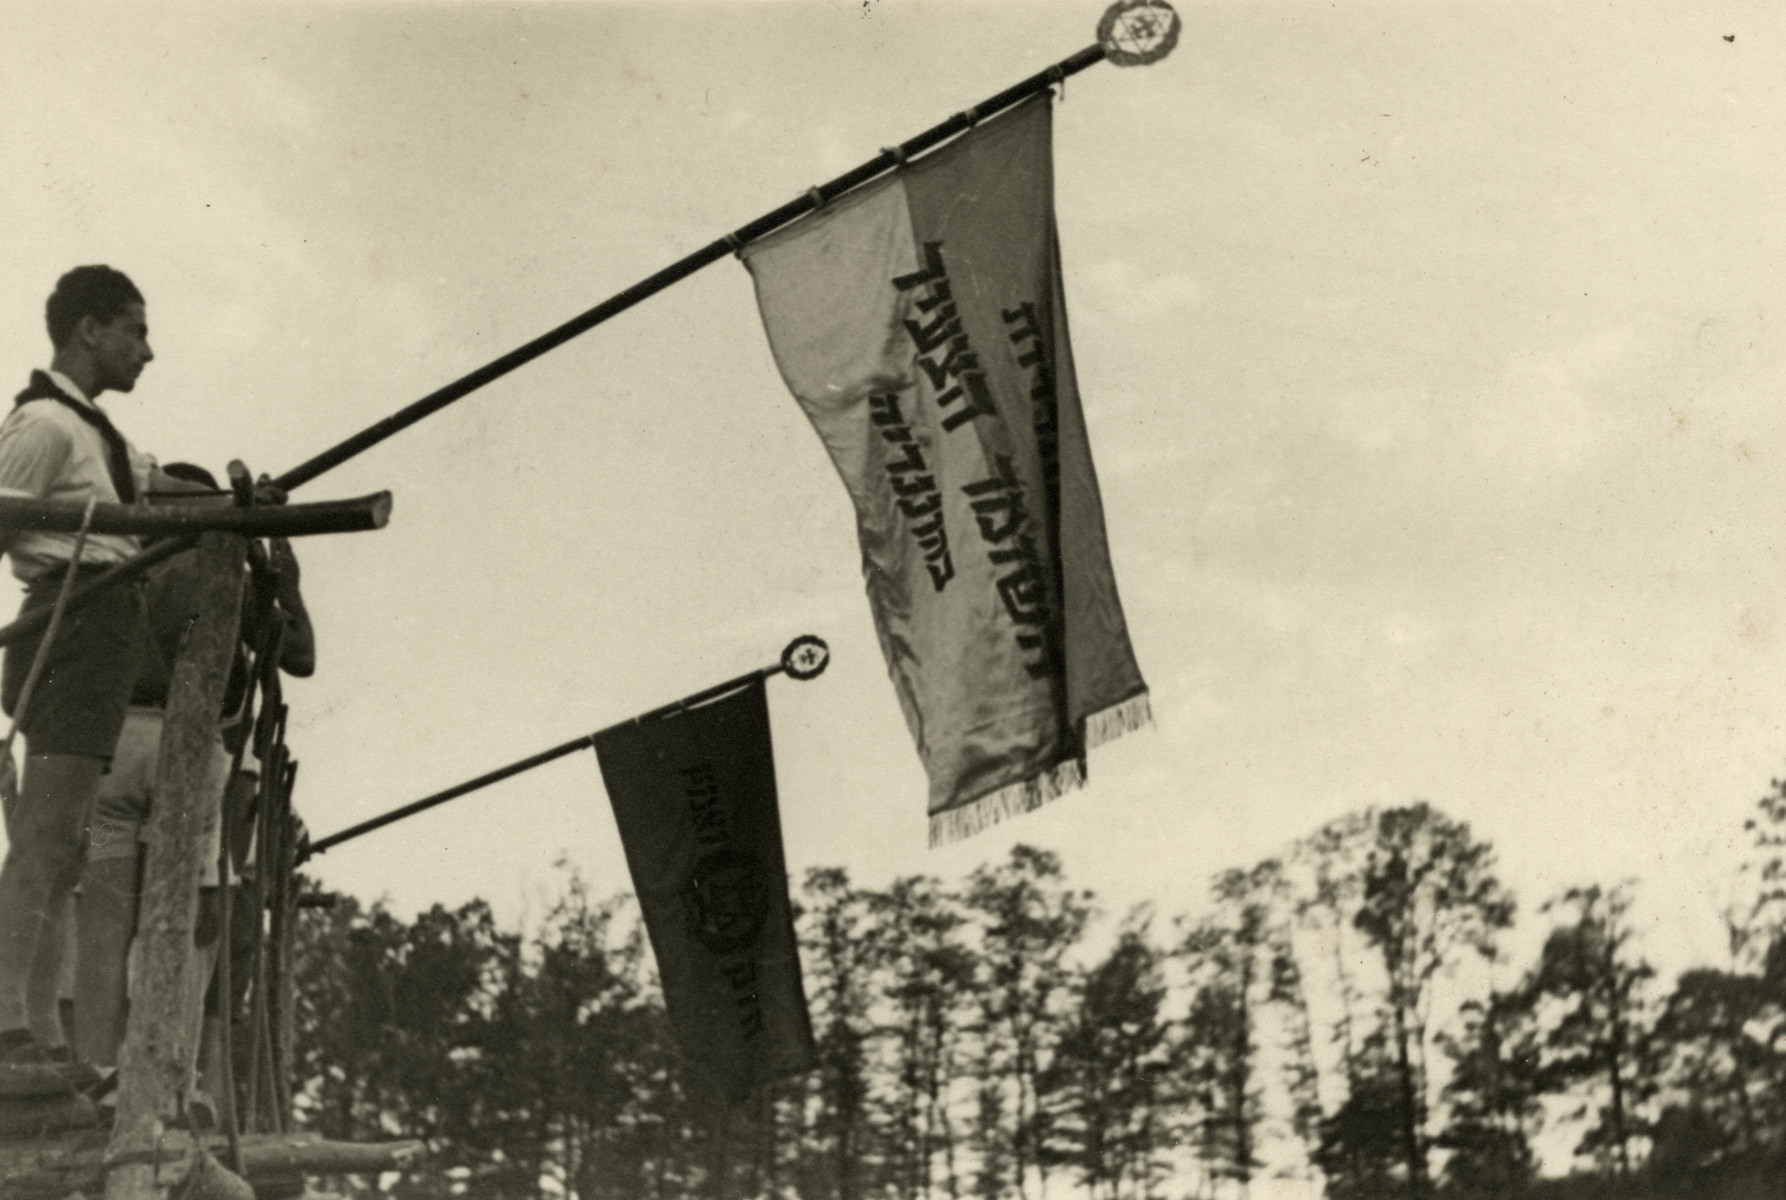 Ephraim Teichman holds the Shomer Hatzair flag in Shomria, a Zionist summer camp in postwar Hungary.